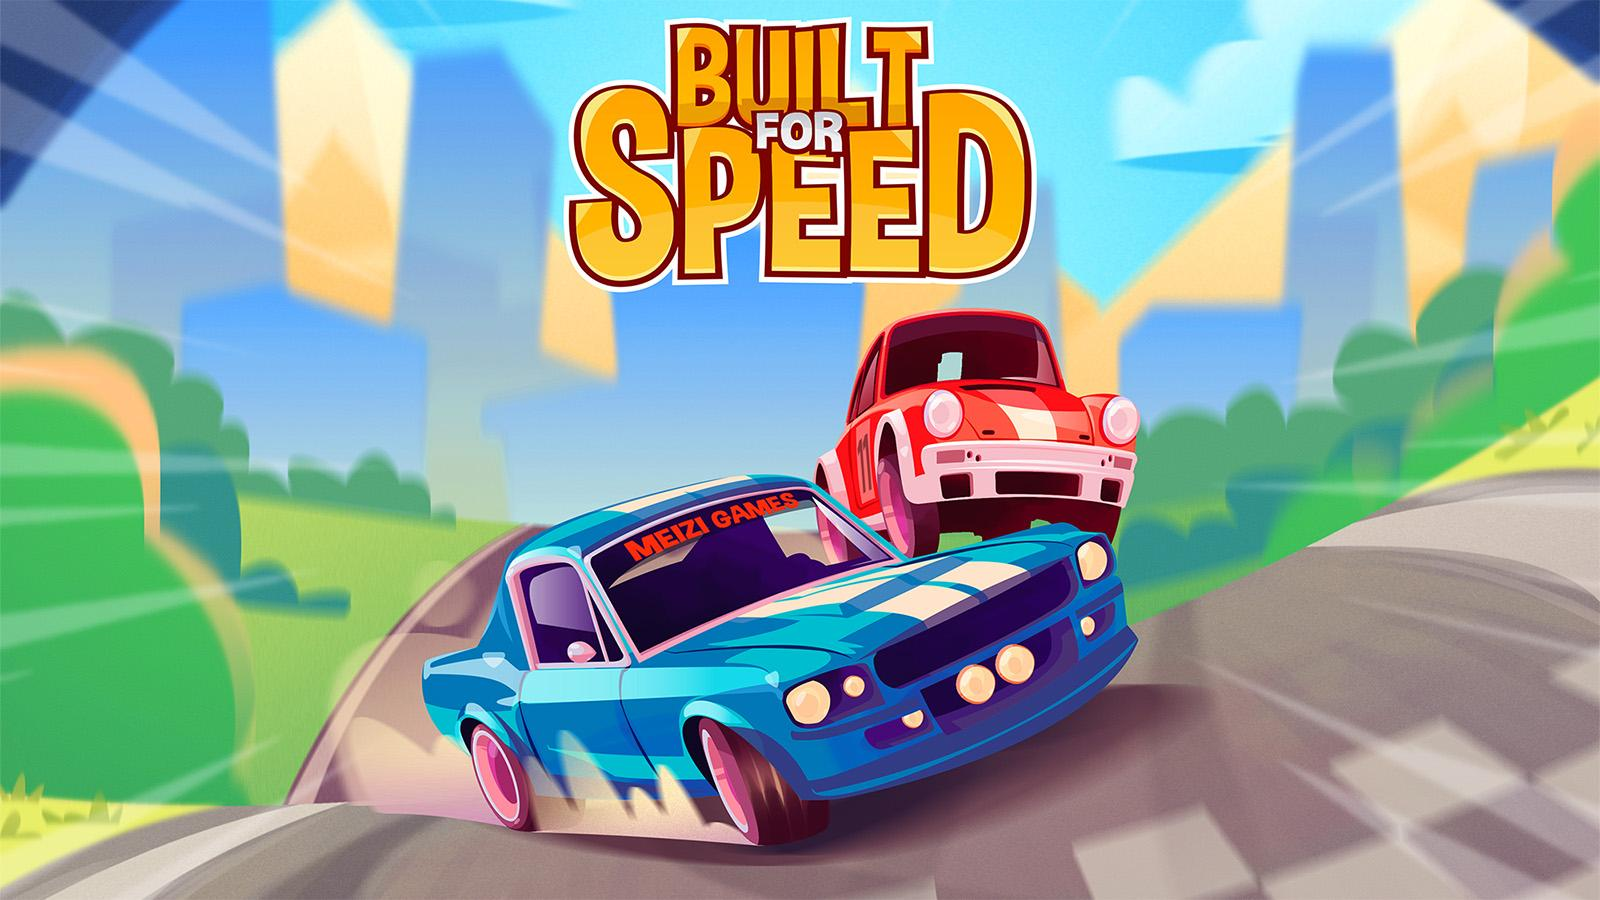 Built for Speed Screenshot 10